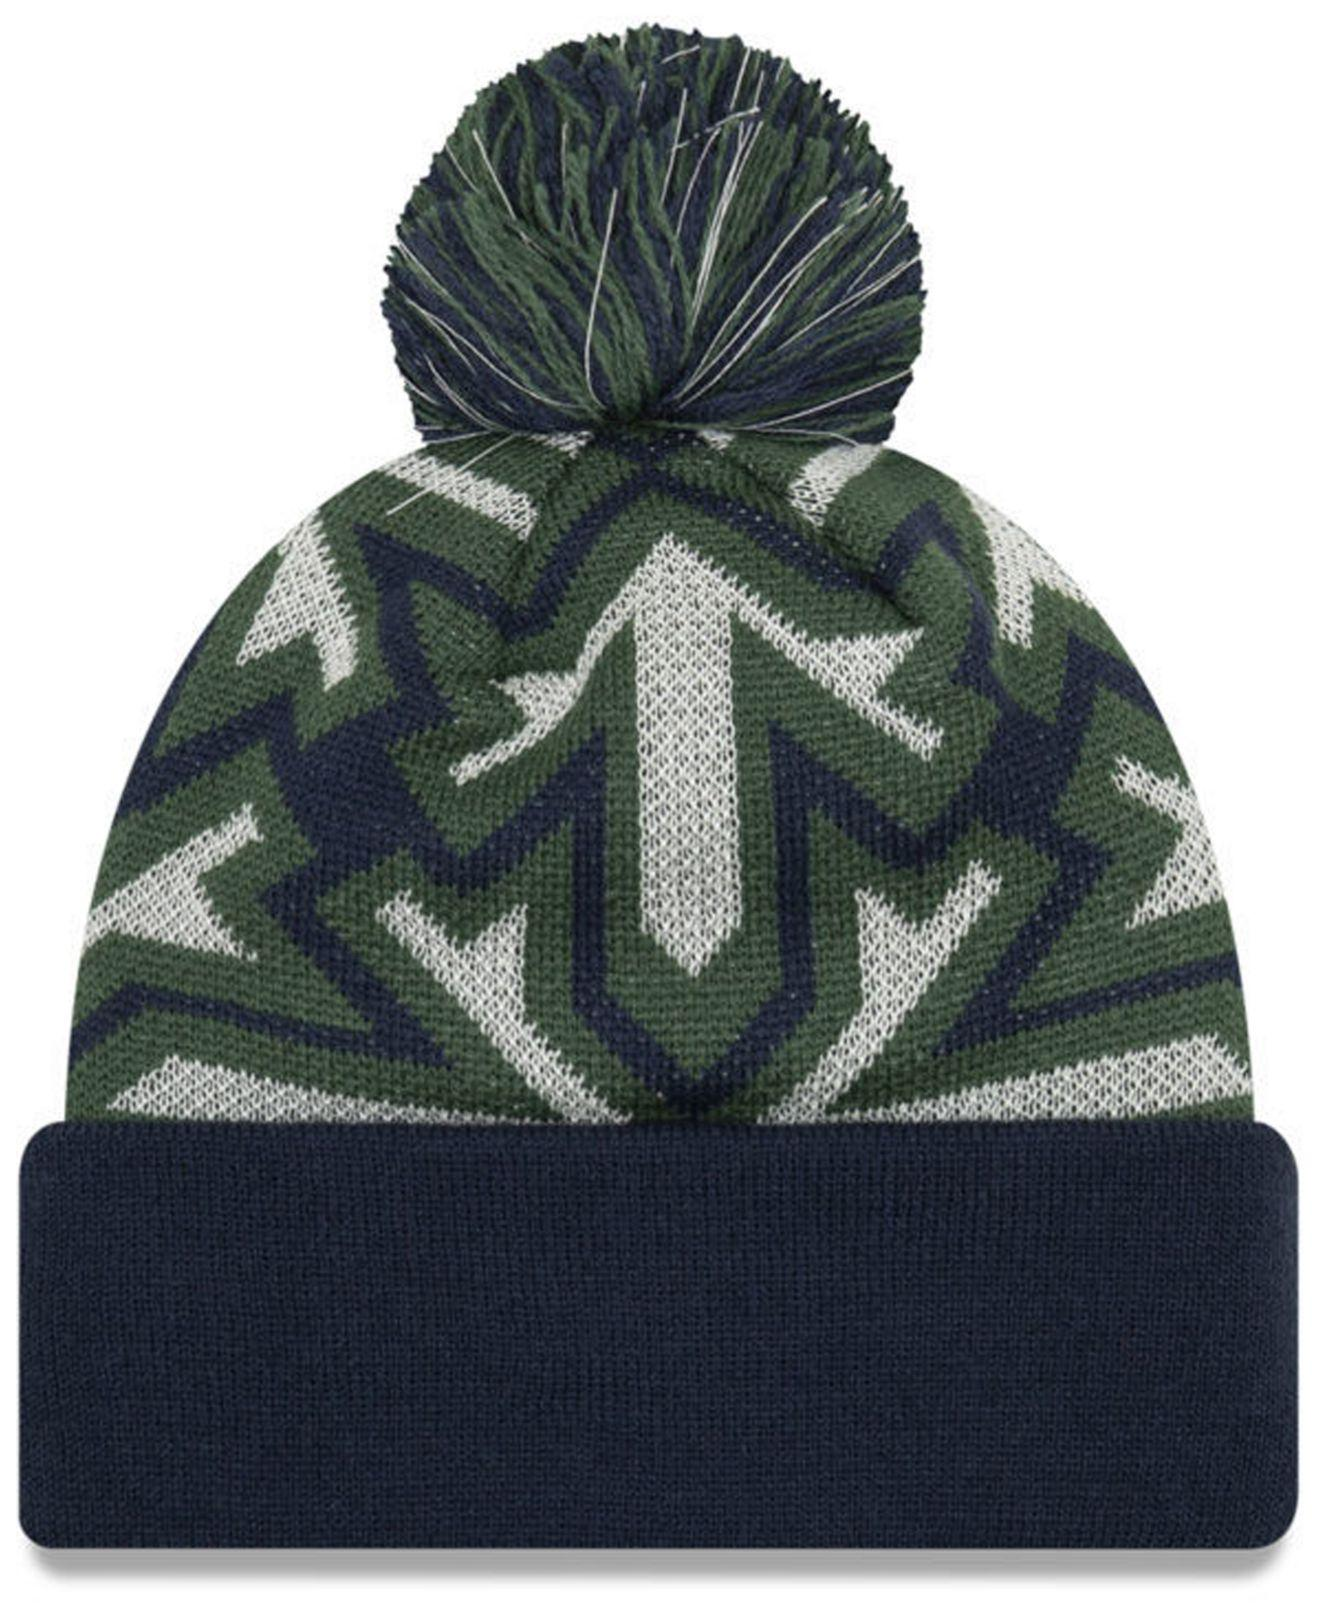 wholesale dealer ad28f 200df ... clearance promo code for lyst ktz utah jazz glowflake cuff knit hat in  blue for men